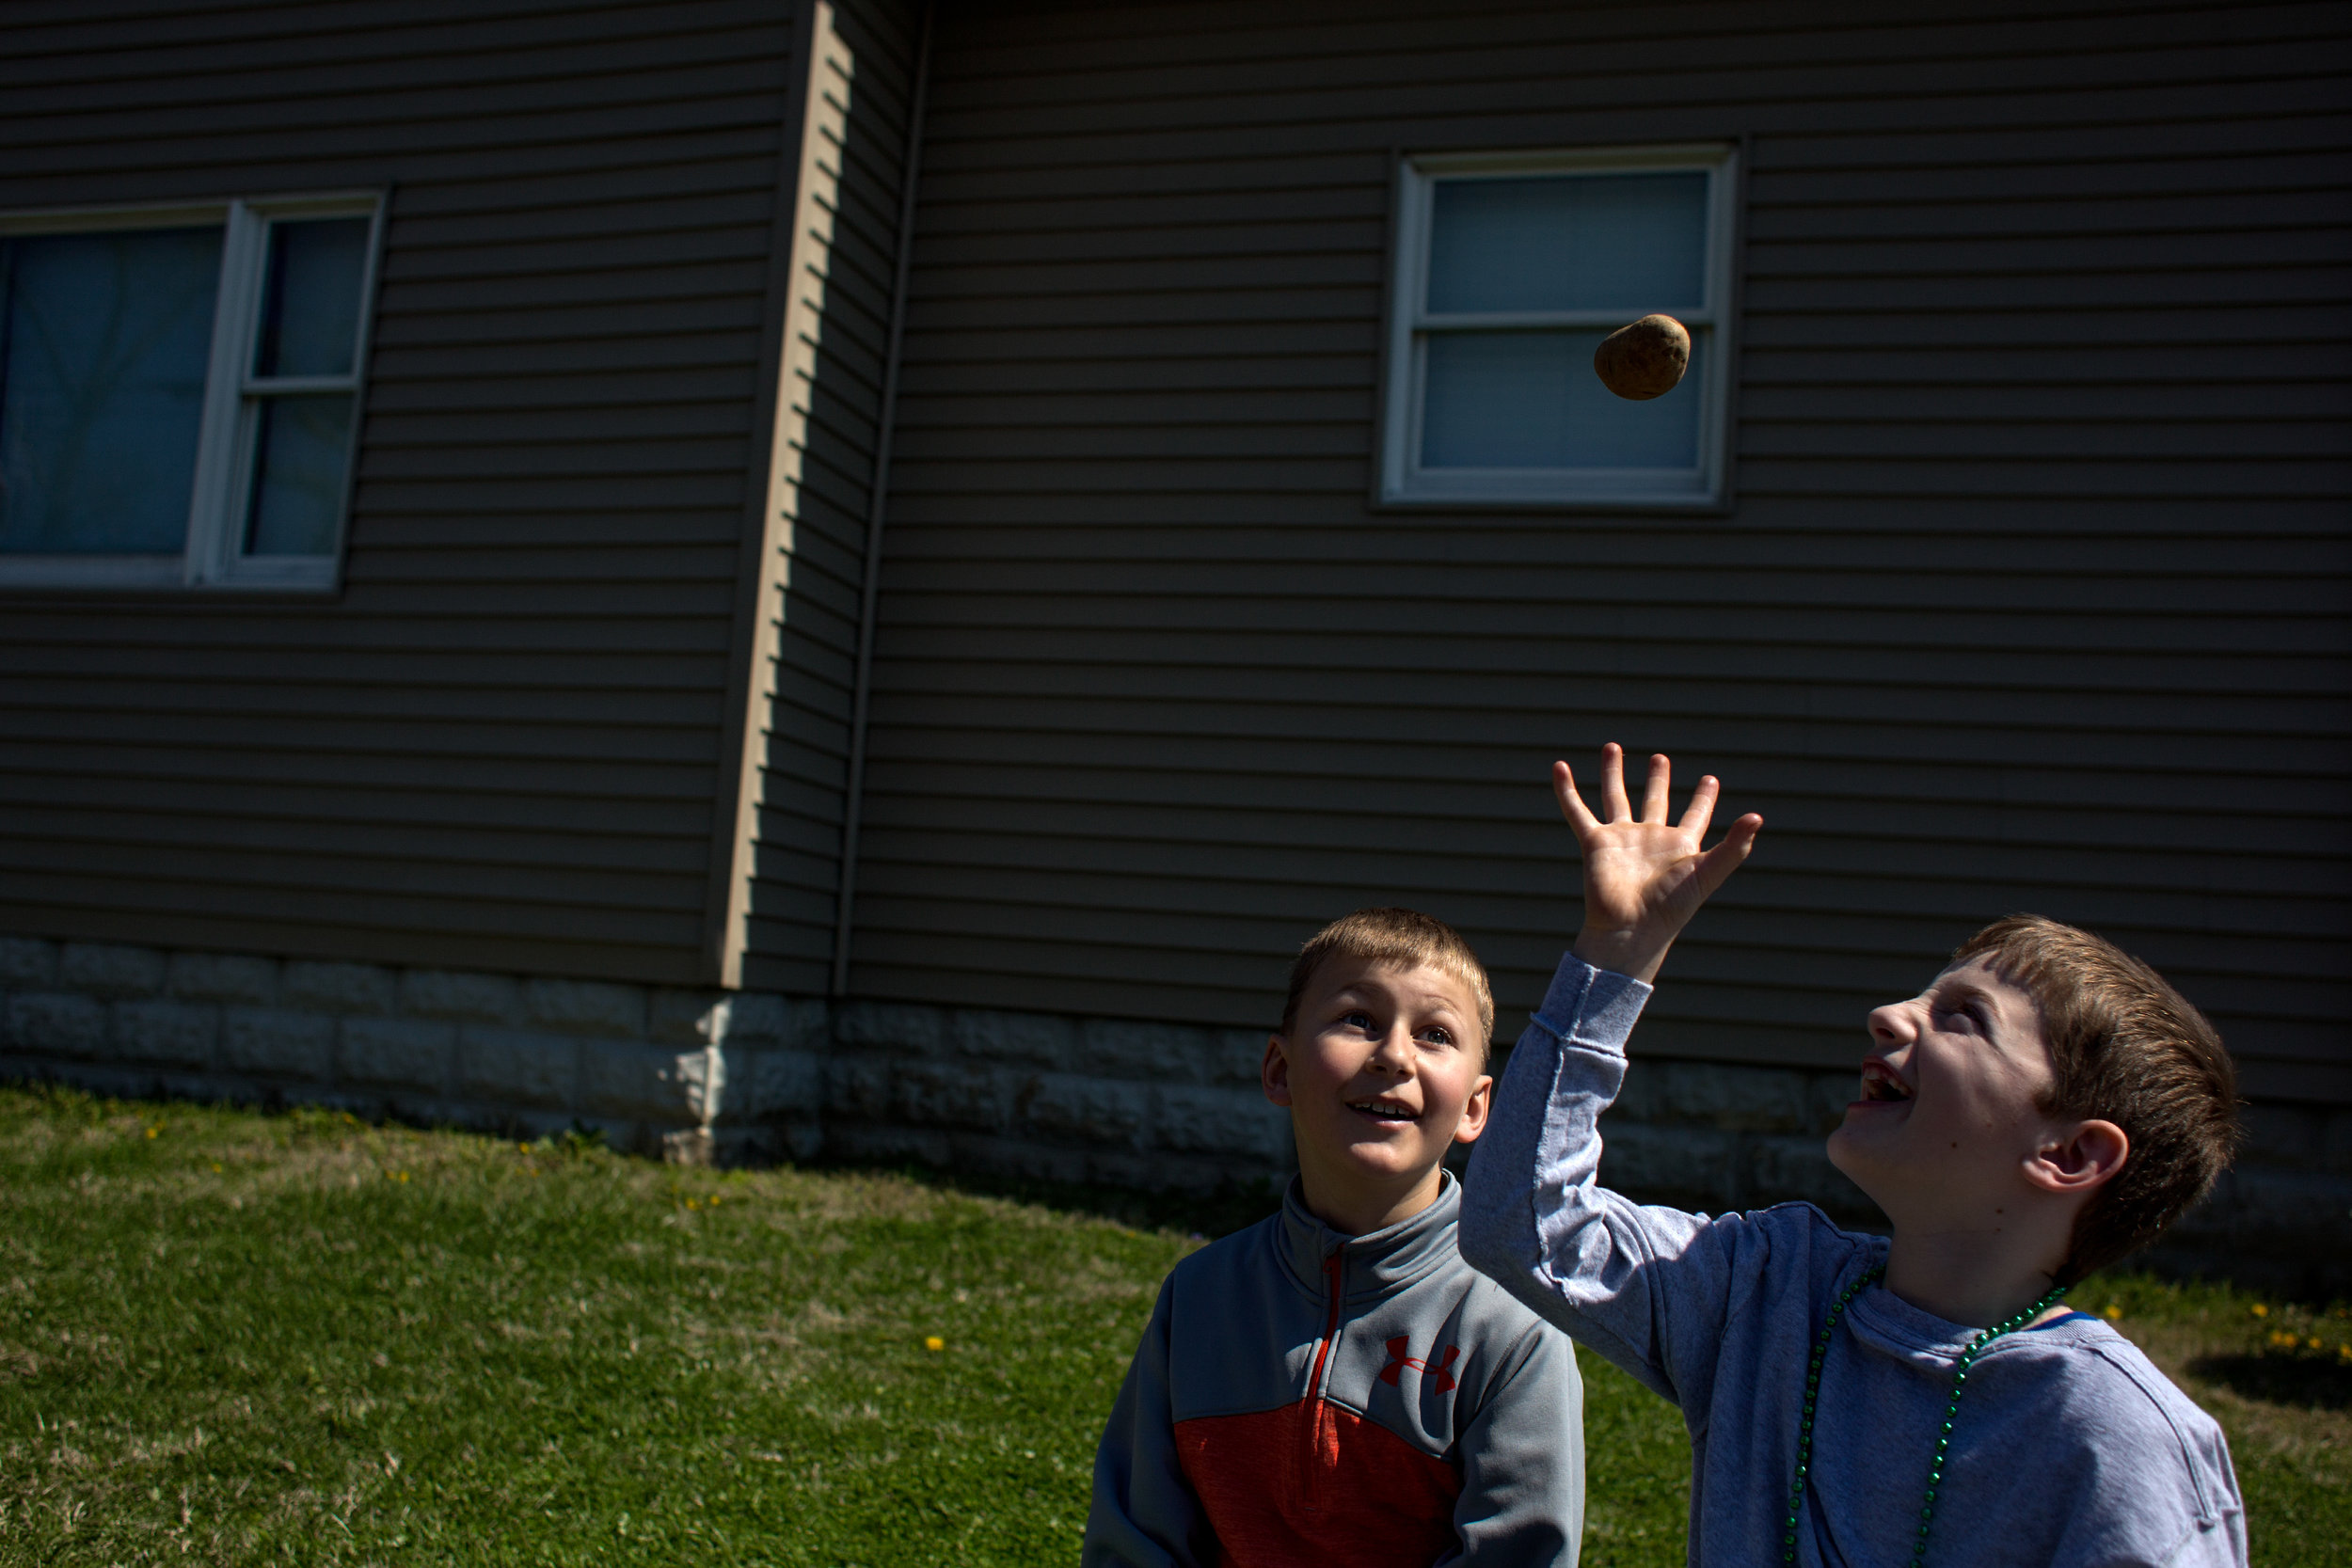 Aiden Ison, left, and Ethan Bauer, both 9 and of Jasper, tossed around a potato that they received during the parade at Ireland's annual St. Patrick's celebration on Sunday.